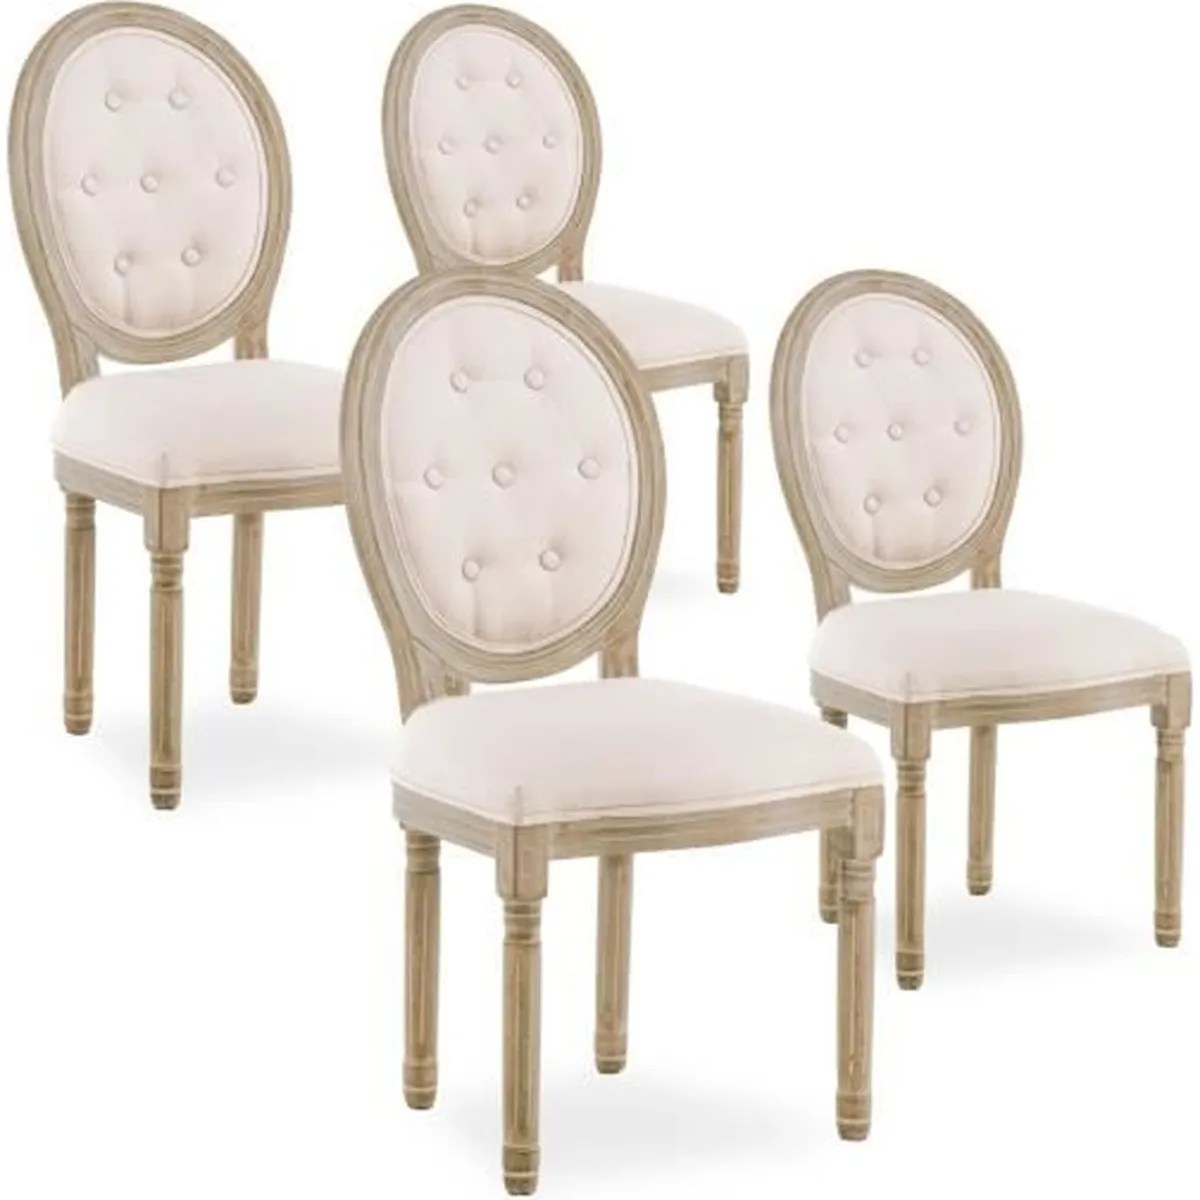 Chaises Louis Philippe Occasion Chaises Louis Xvi Occasion Beautiful Chaise Louis Xiii